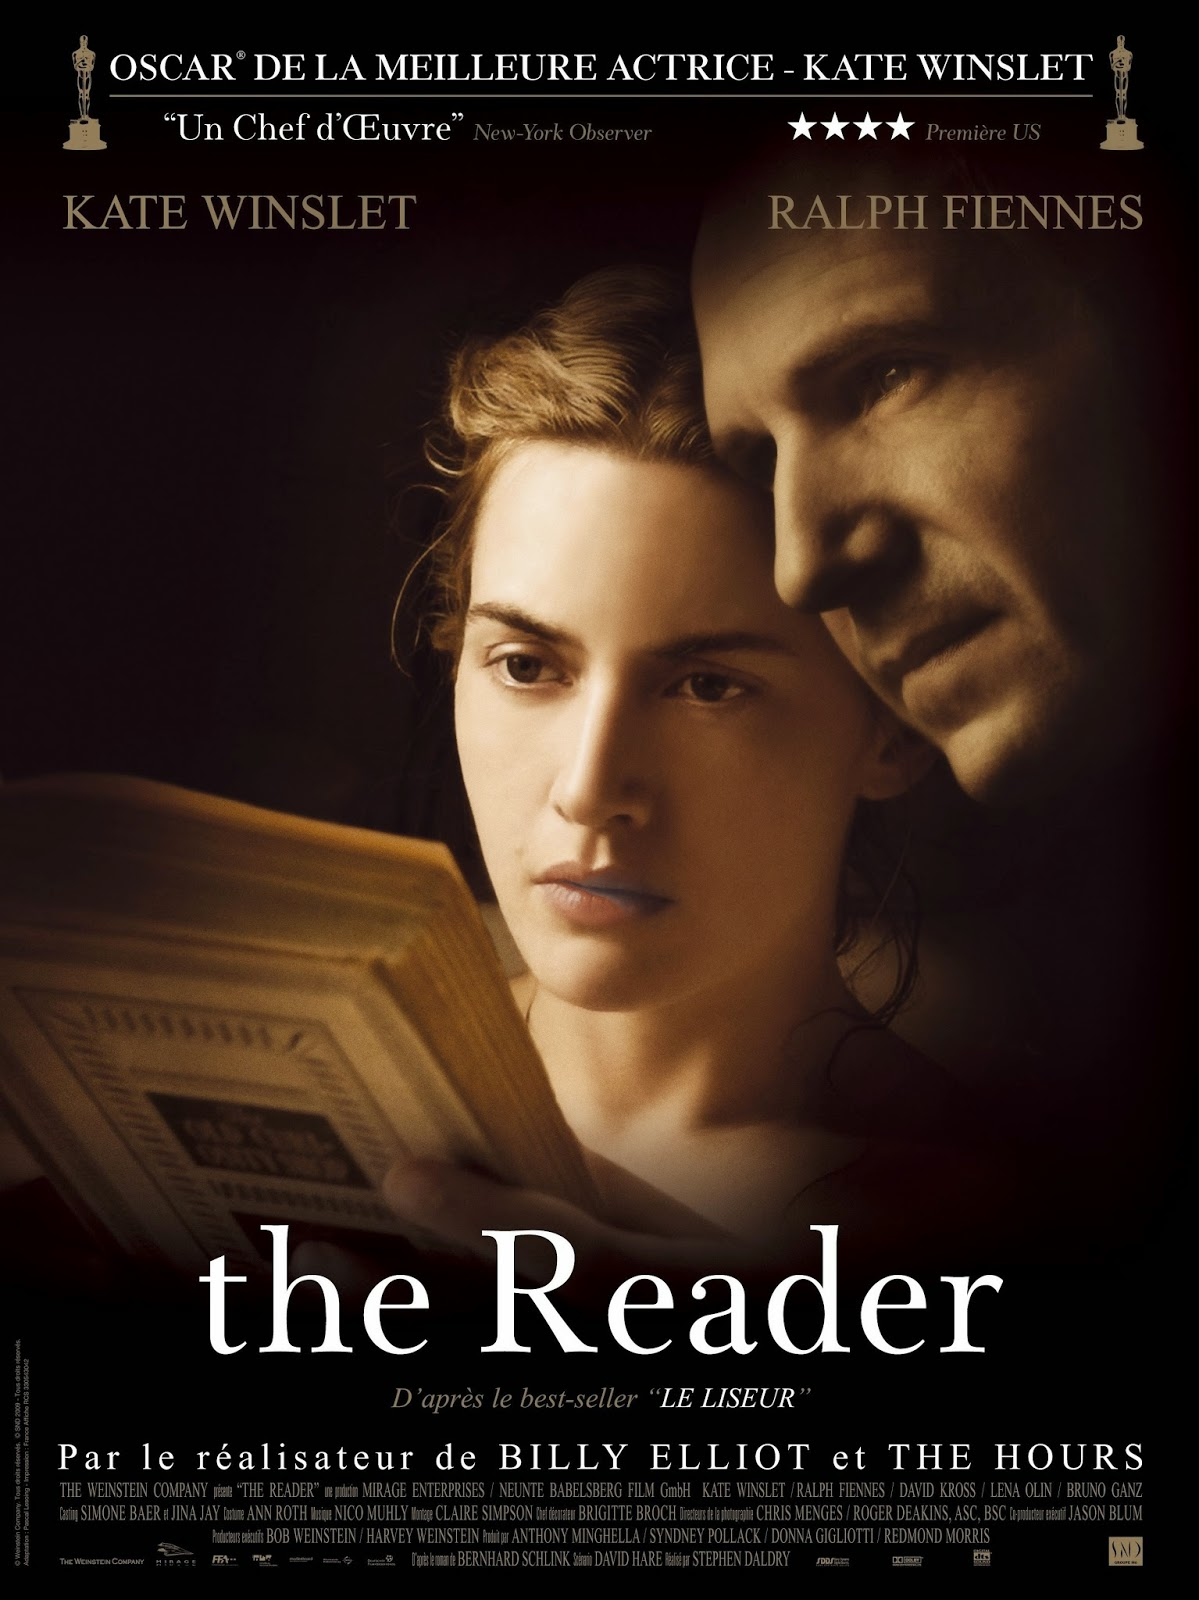 the relationship between michael and hanna in the story the reader The film centers on a sexual relationship between hanna (kate winslet), a woman in her mid-30s, and michael (david kross), a boy of 15 that such things are wrong is beside the point they happen, and the story is about how it connected with her earlier life and his later one.